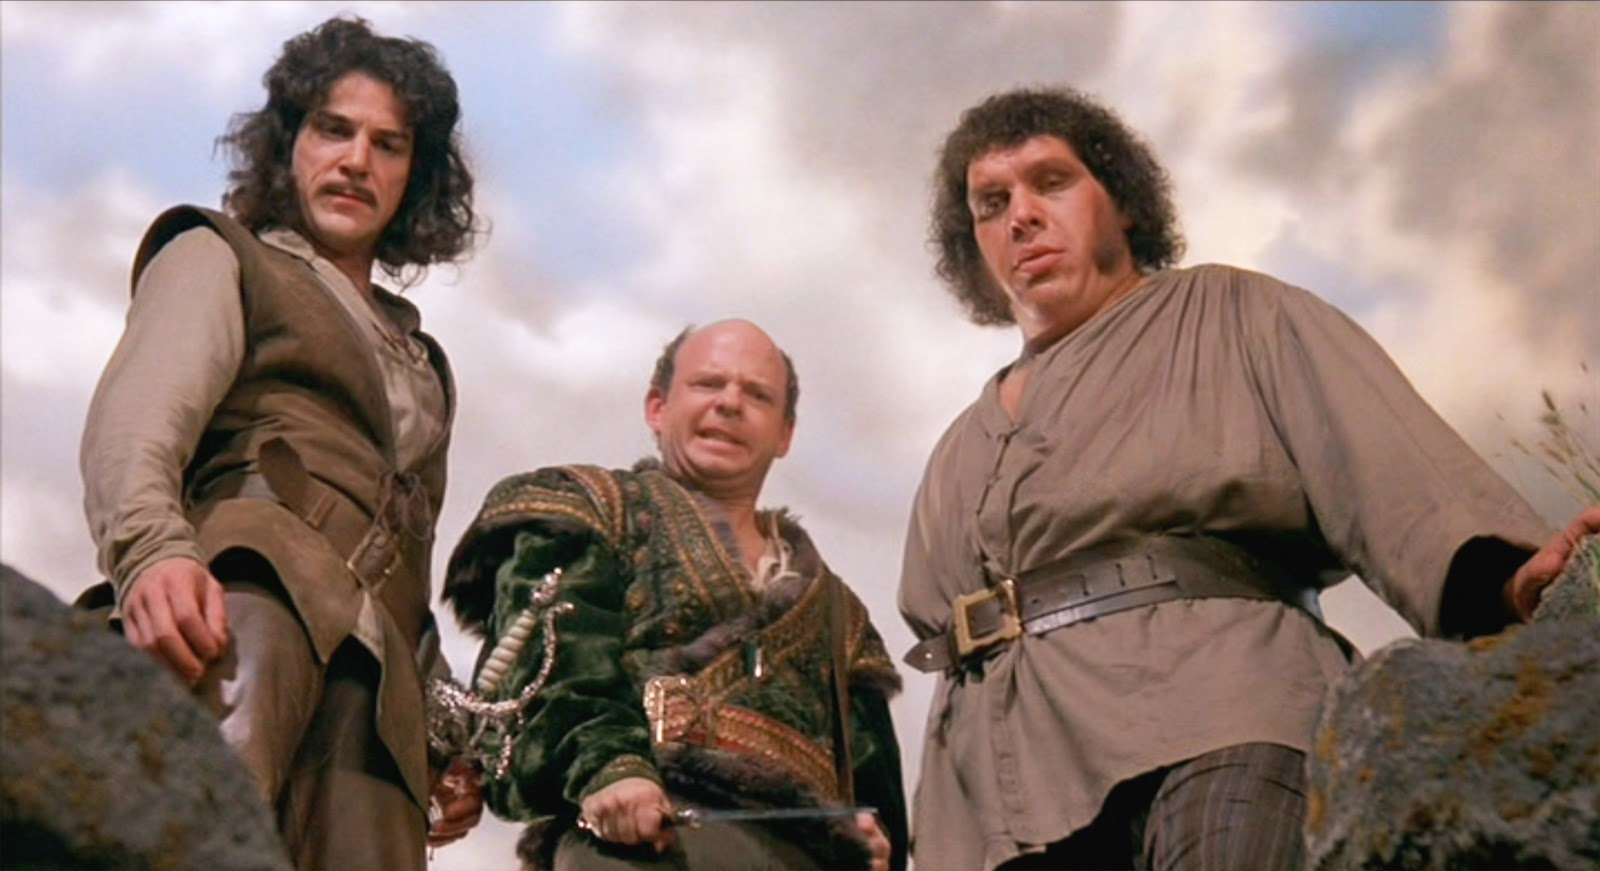 the princess bride, Princess Bride, movies/tv